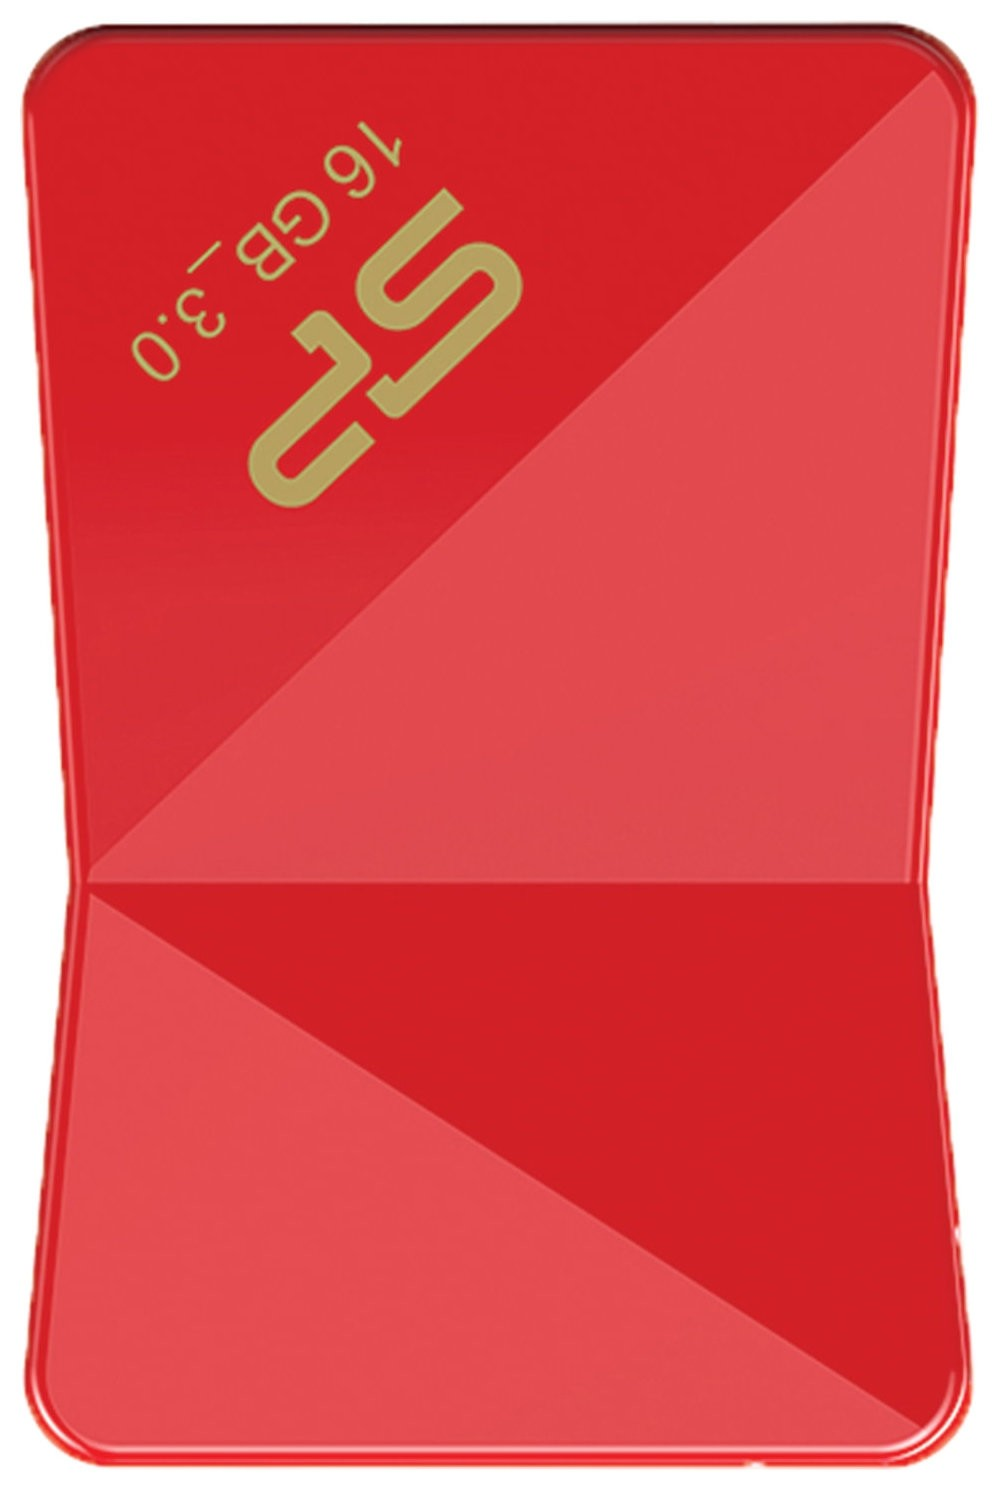 Флэш-диск 16 Gb Silicon Power Jewel J08 Usb 3.1, красный   Silicon power